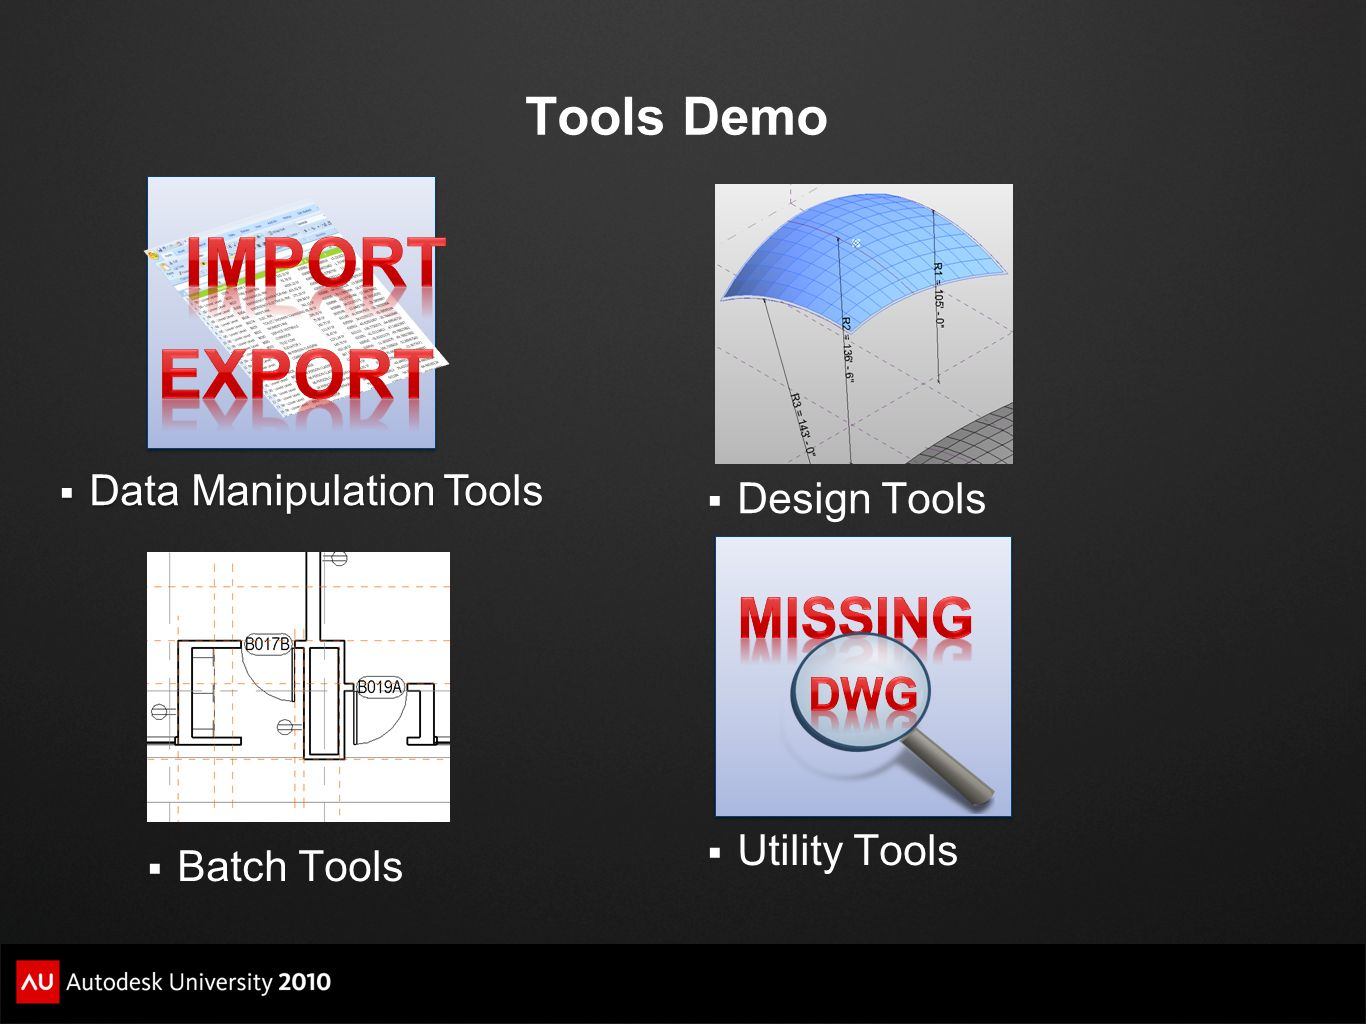 Import Export MissinG Tools Demo Dwg Data Manipulation Tools